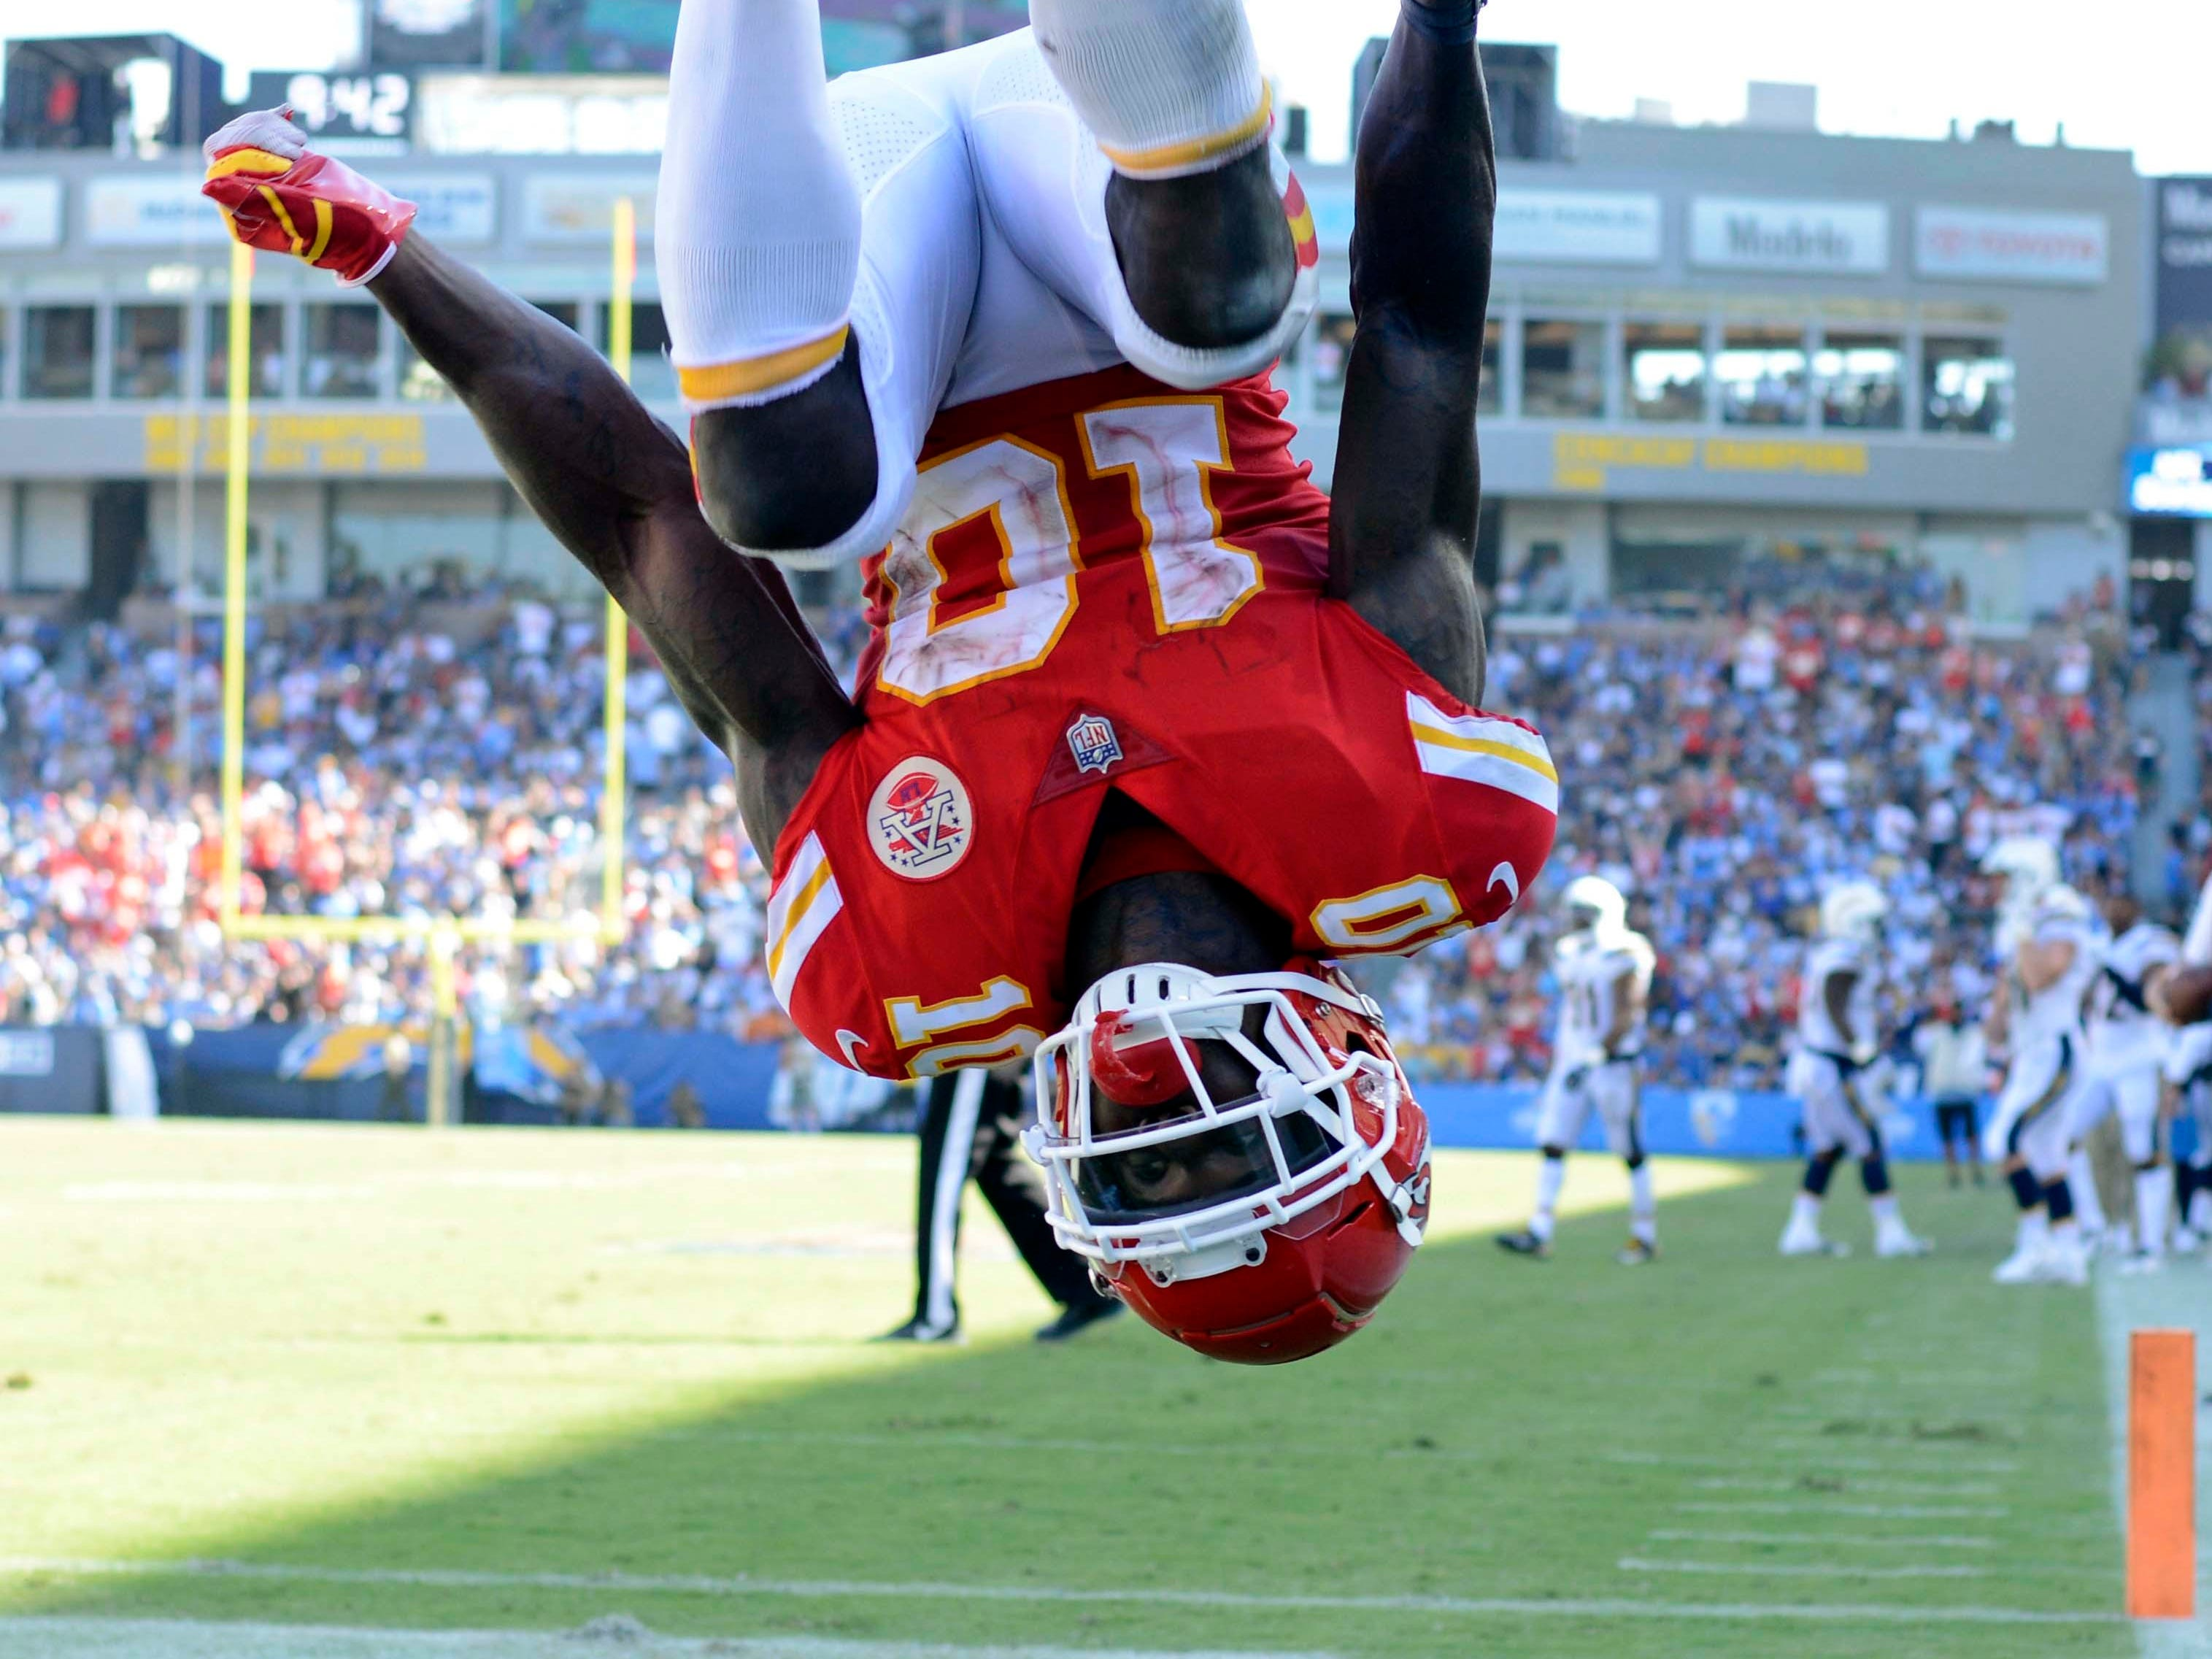 Kansas City Chiefs wide receiver Tyreek Hill flips in celebration after a  touchdown  against the Los Angeles Chargers at StubHub Center.